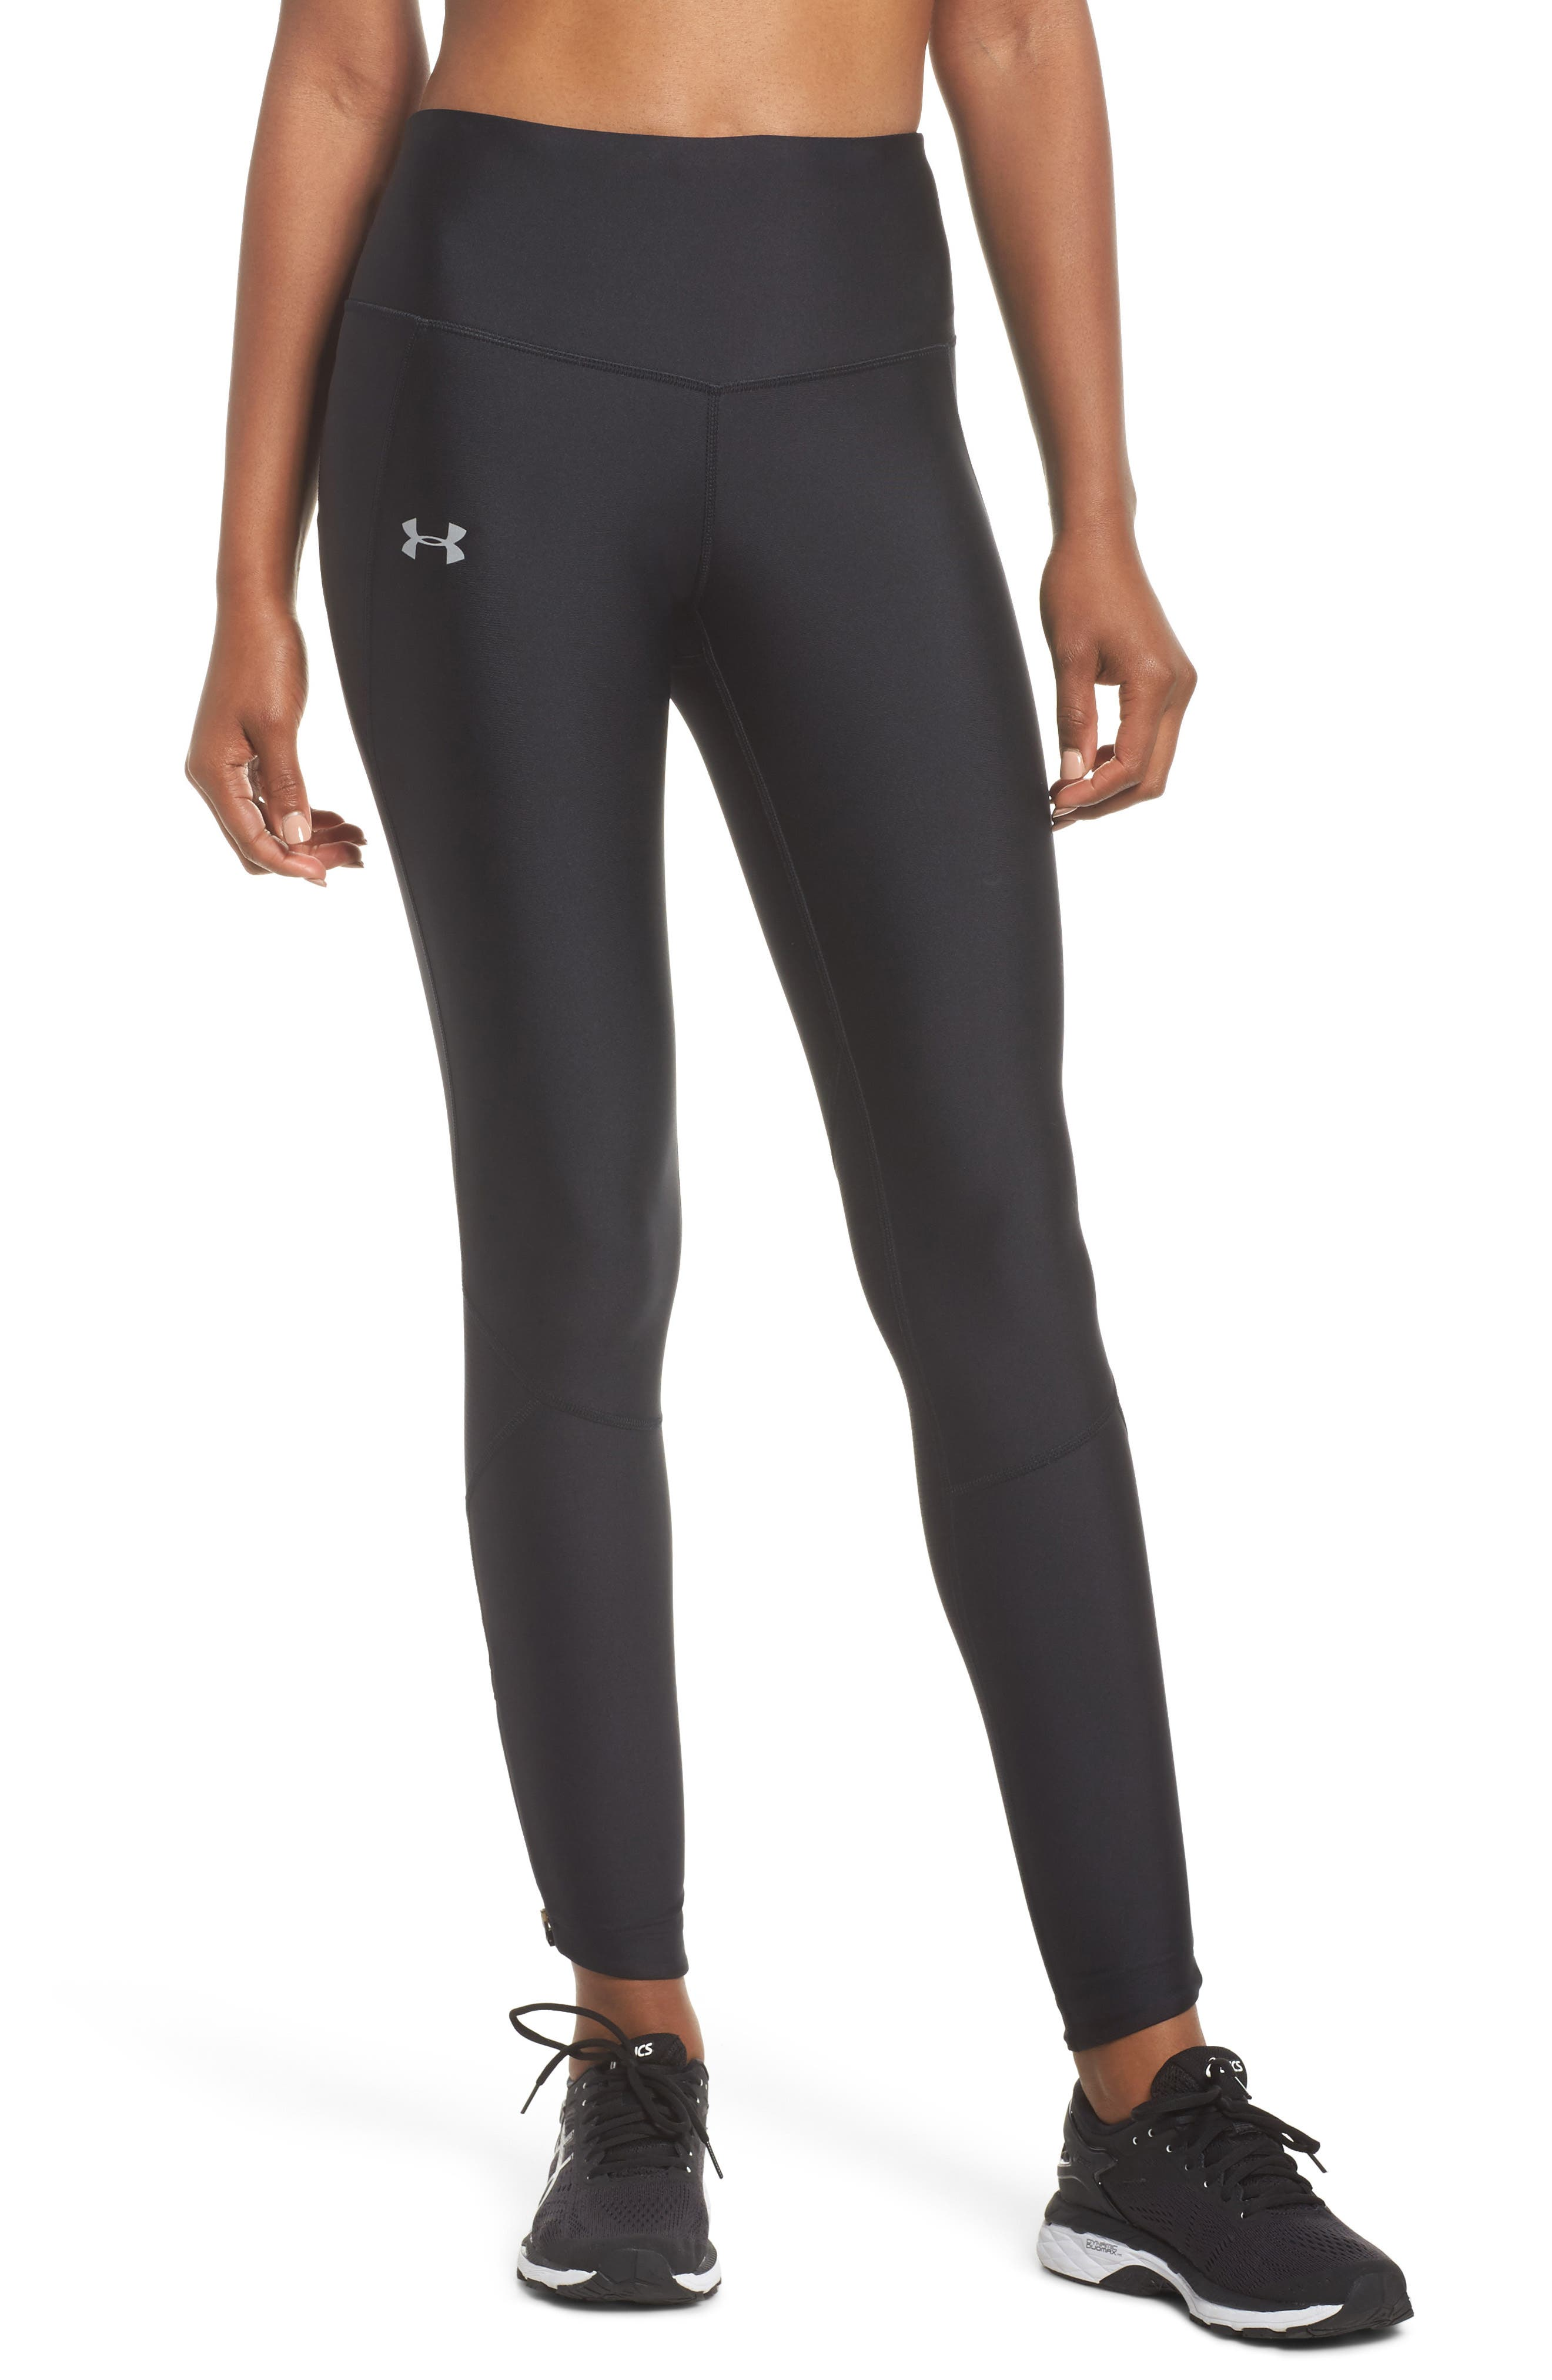 Fly Fast Tights,                         Main,                         color, Black